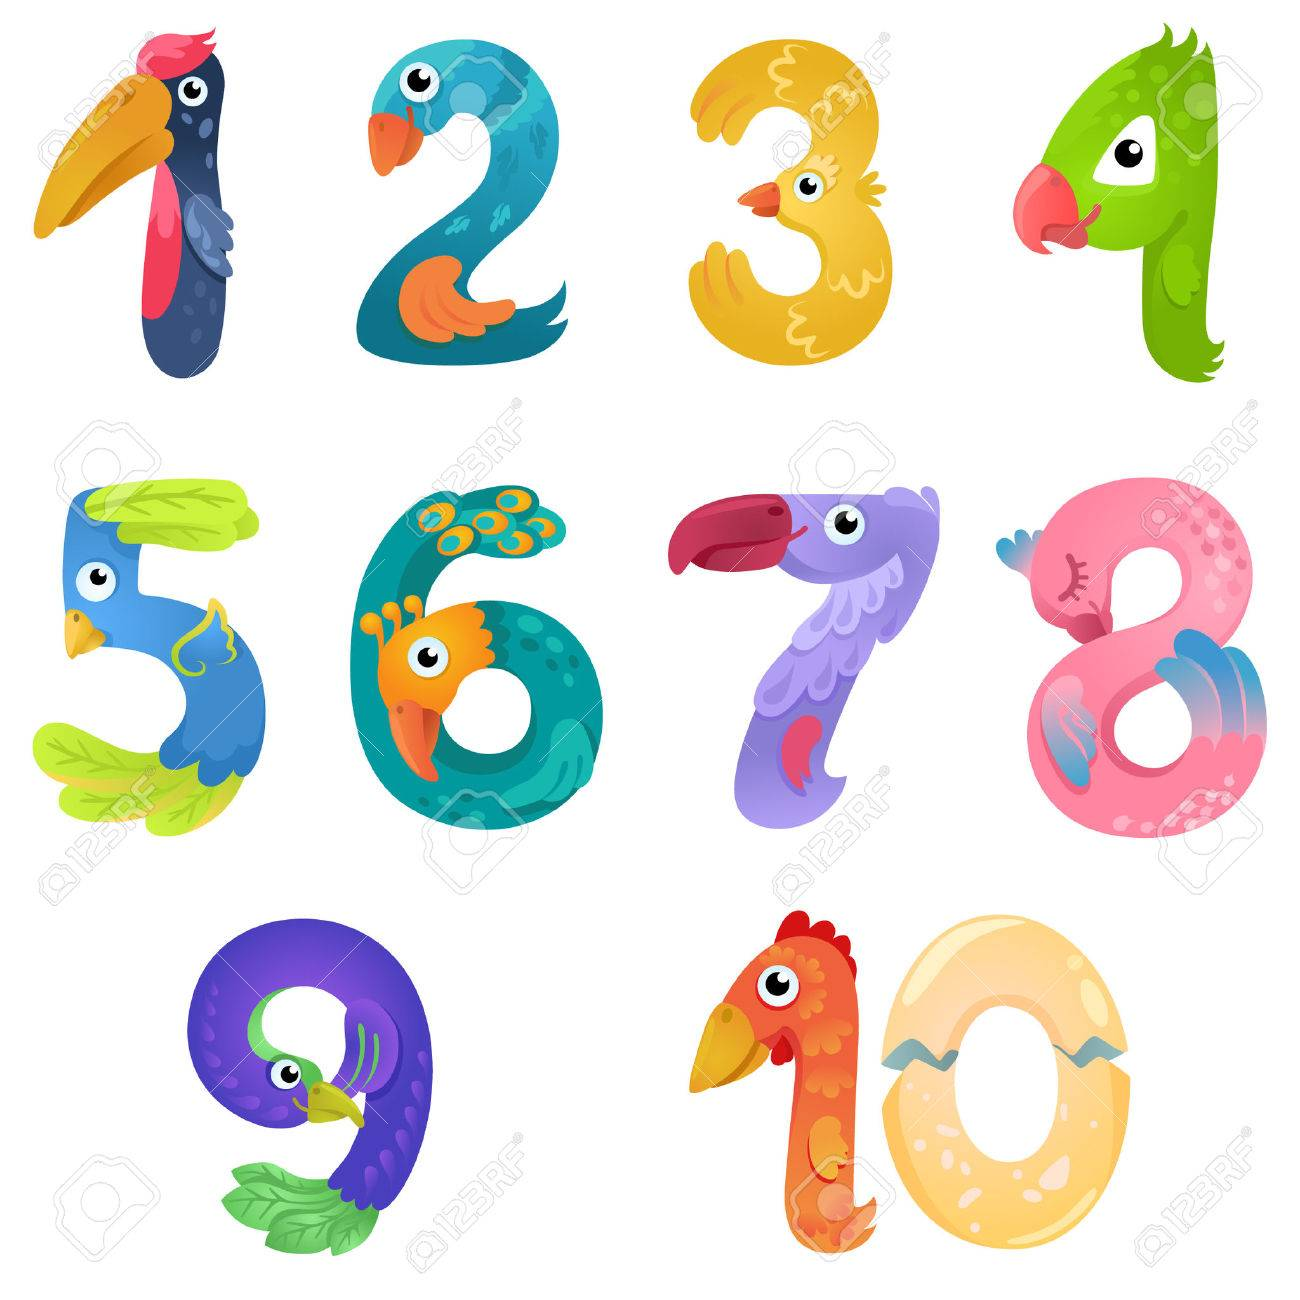 Numbers like birds in fairy style - 55816873